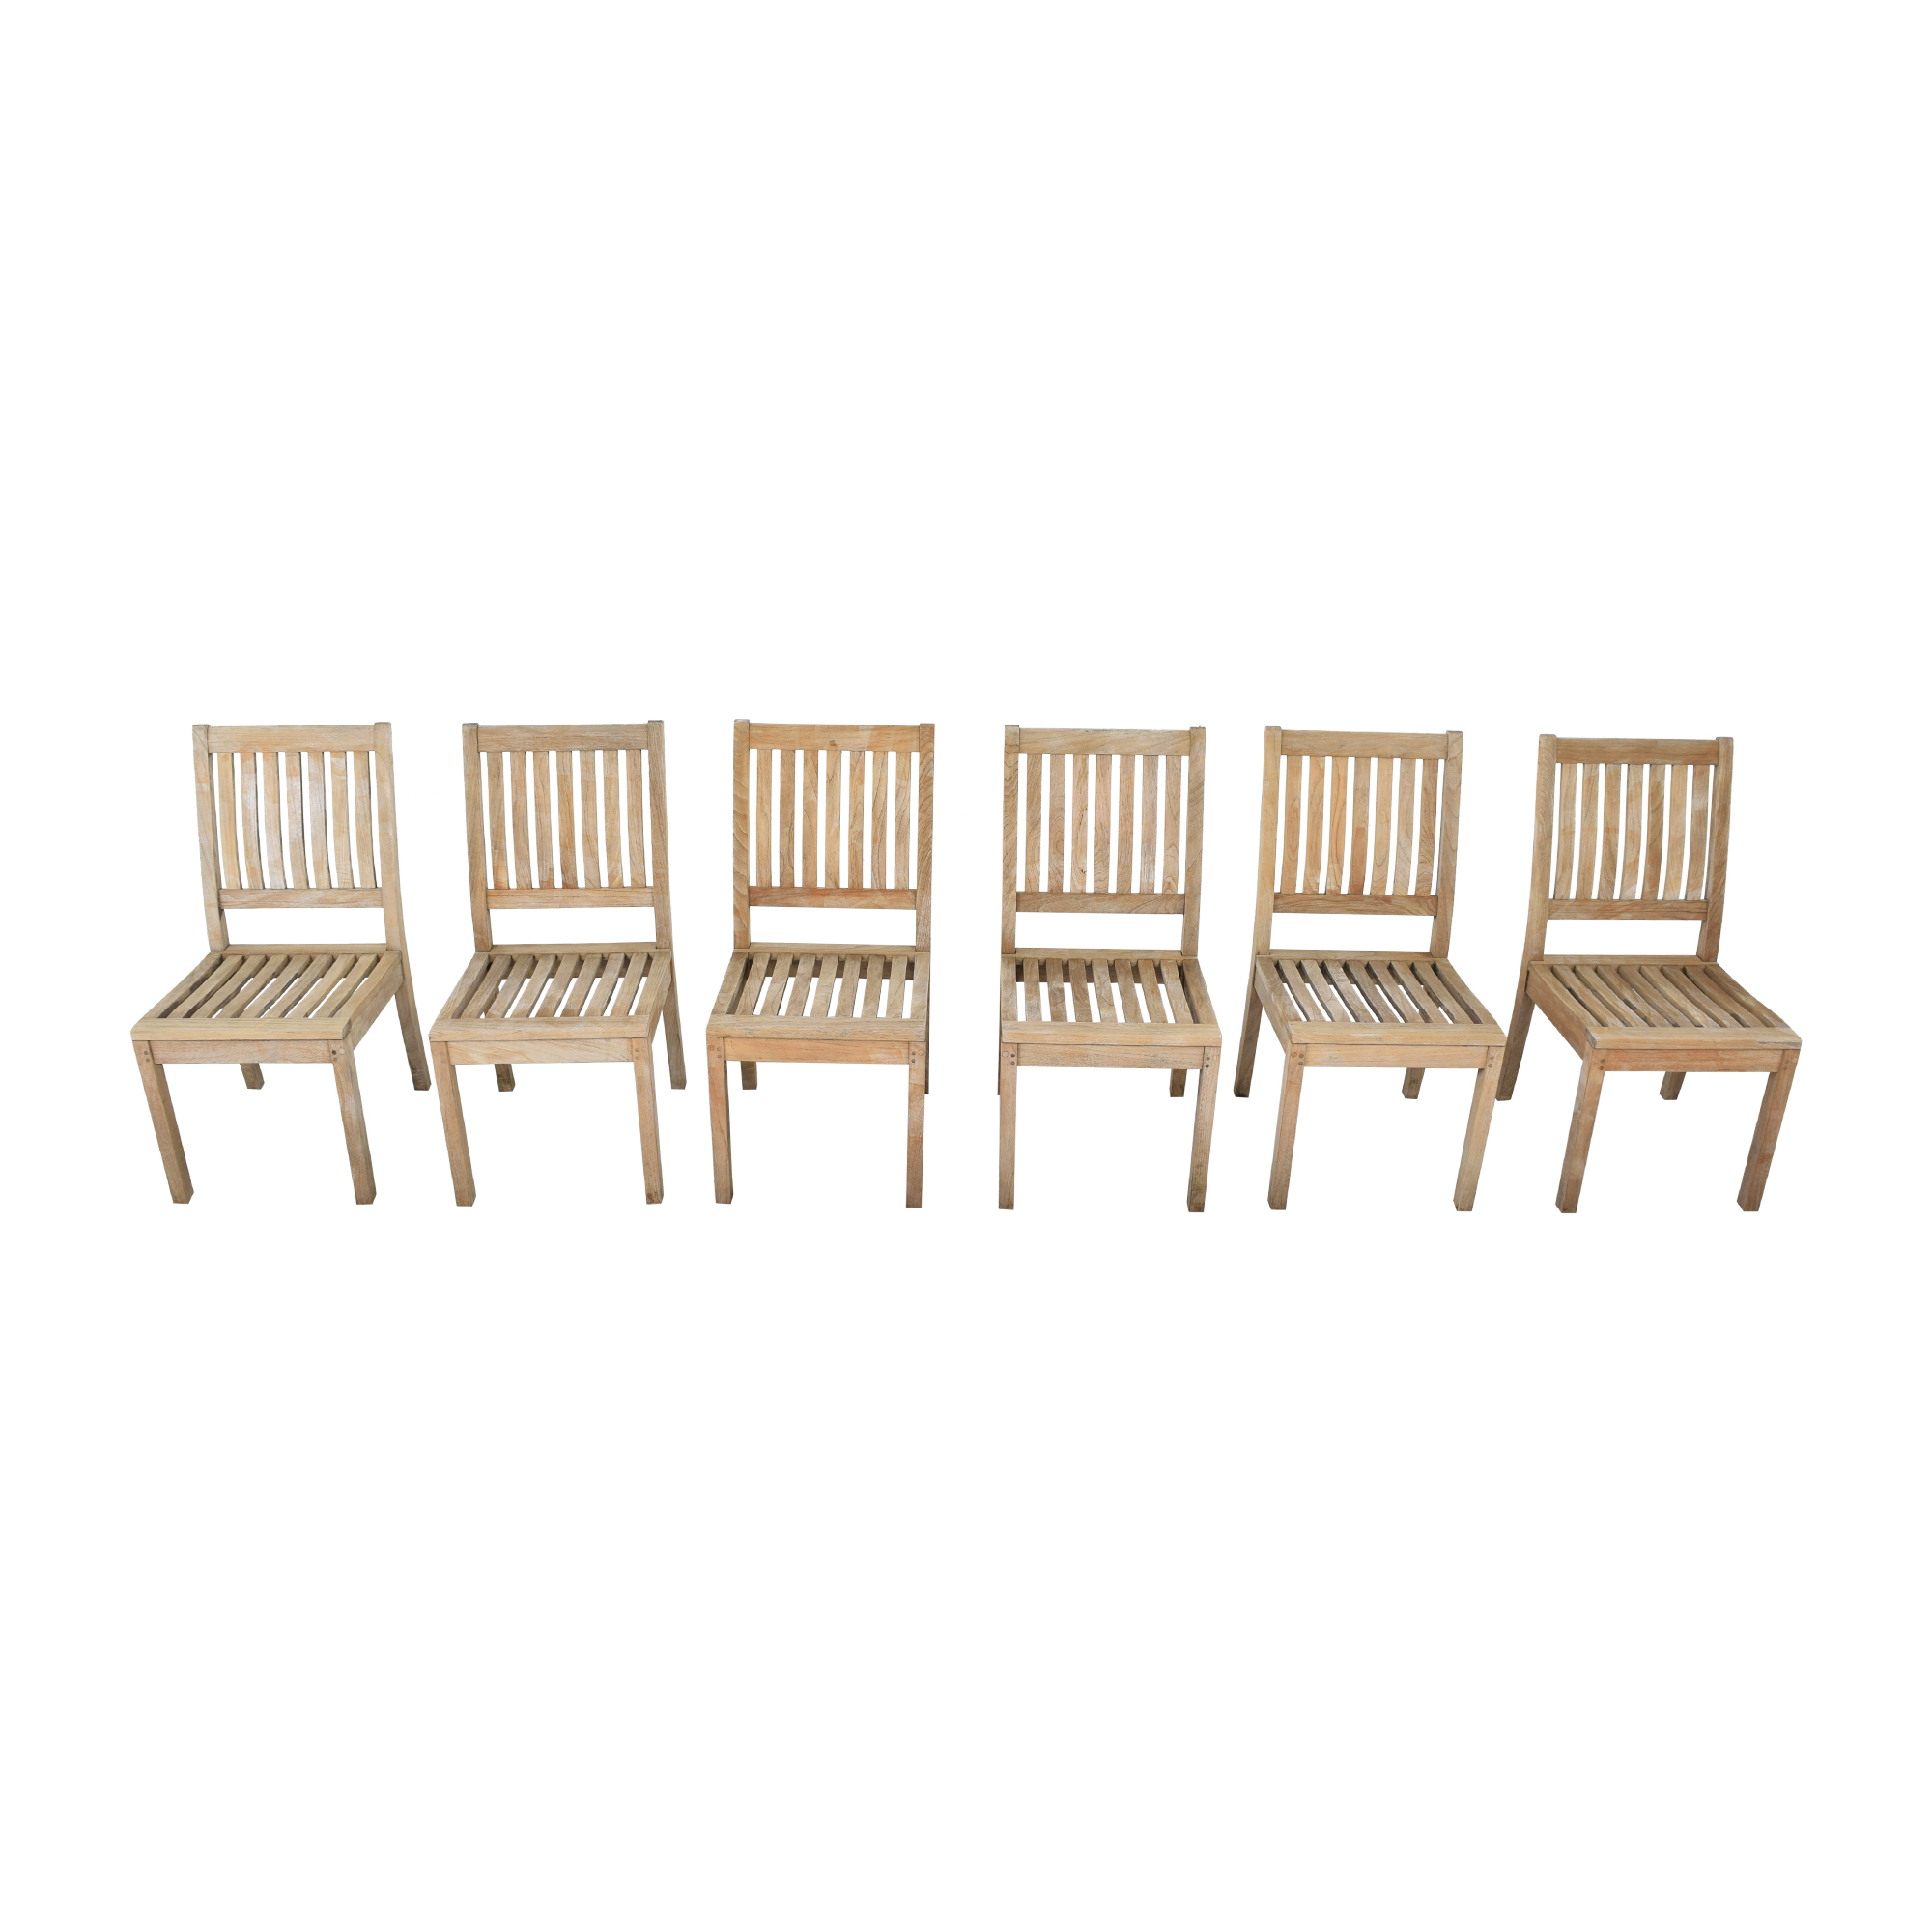 Gloster Gloster Wooden Dining Chairs brown